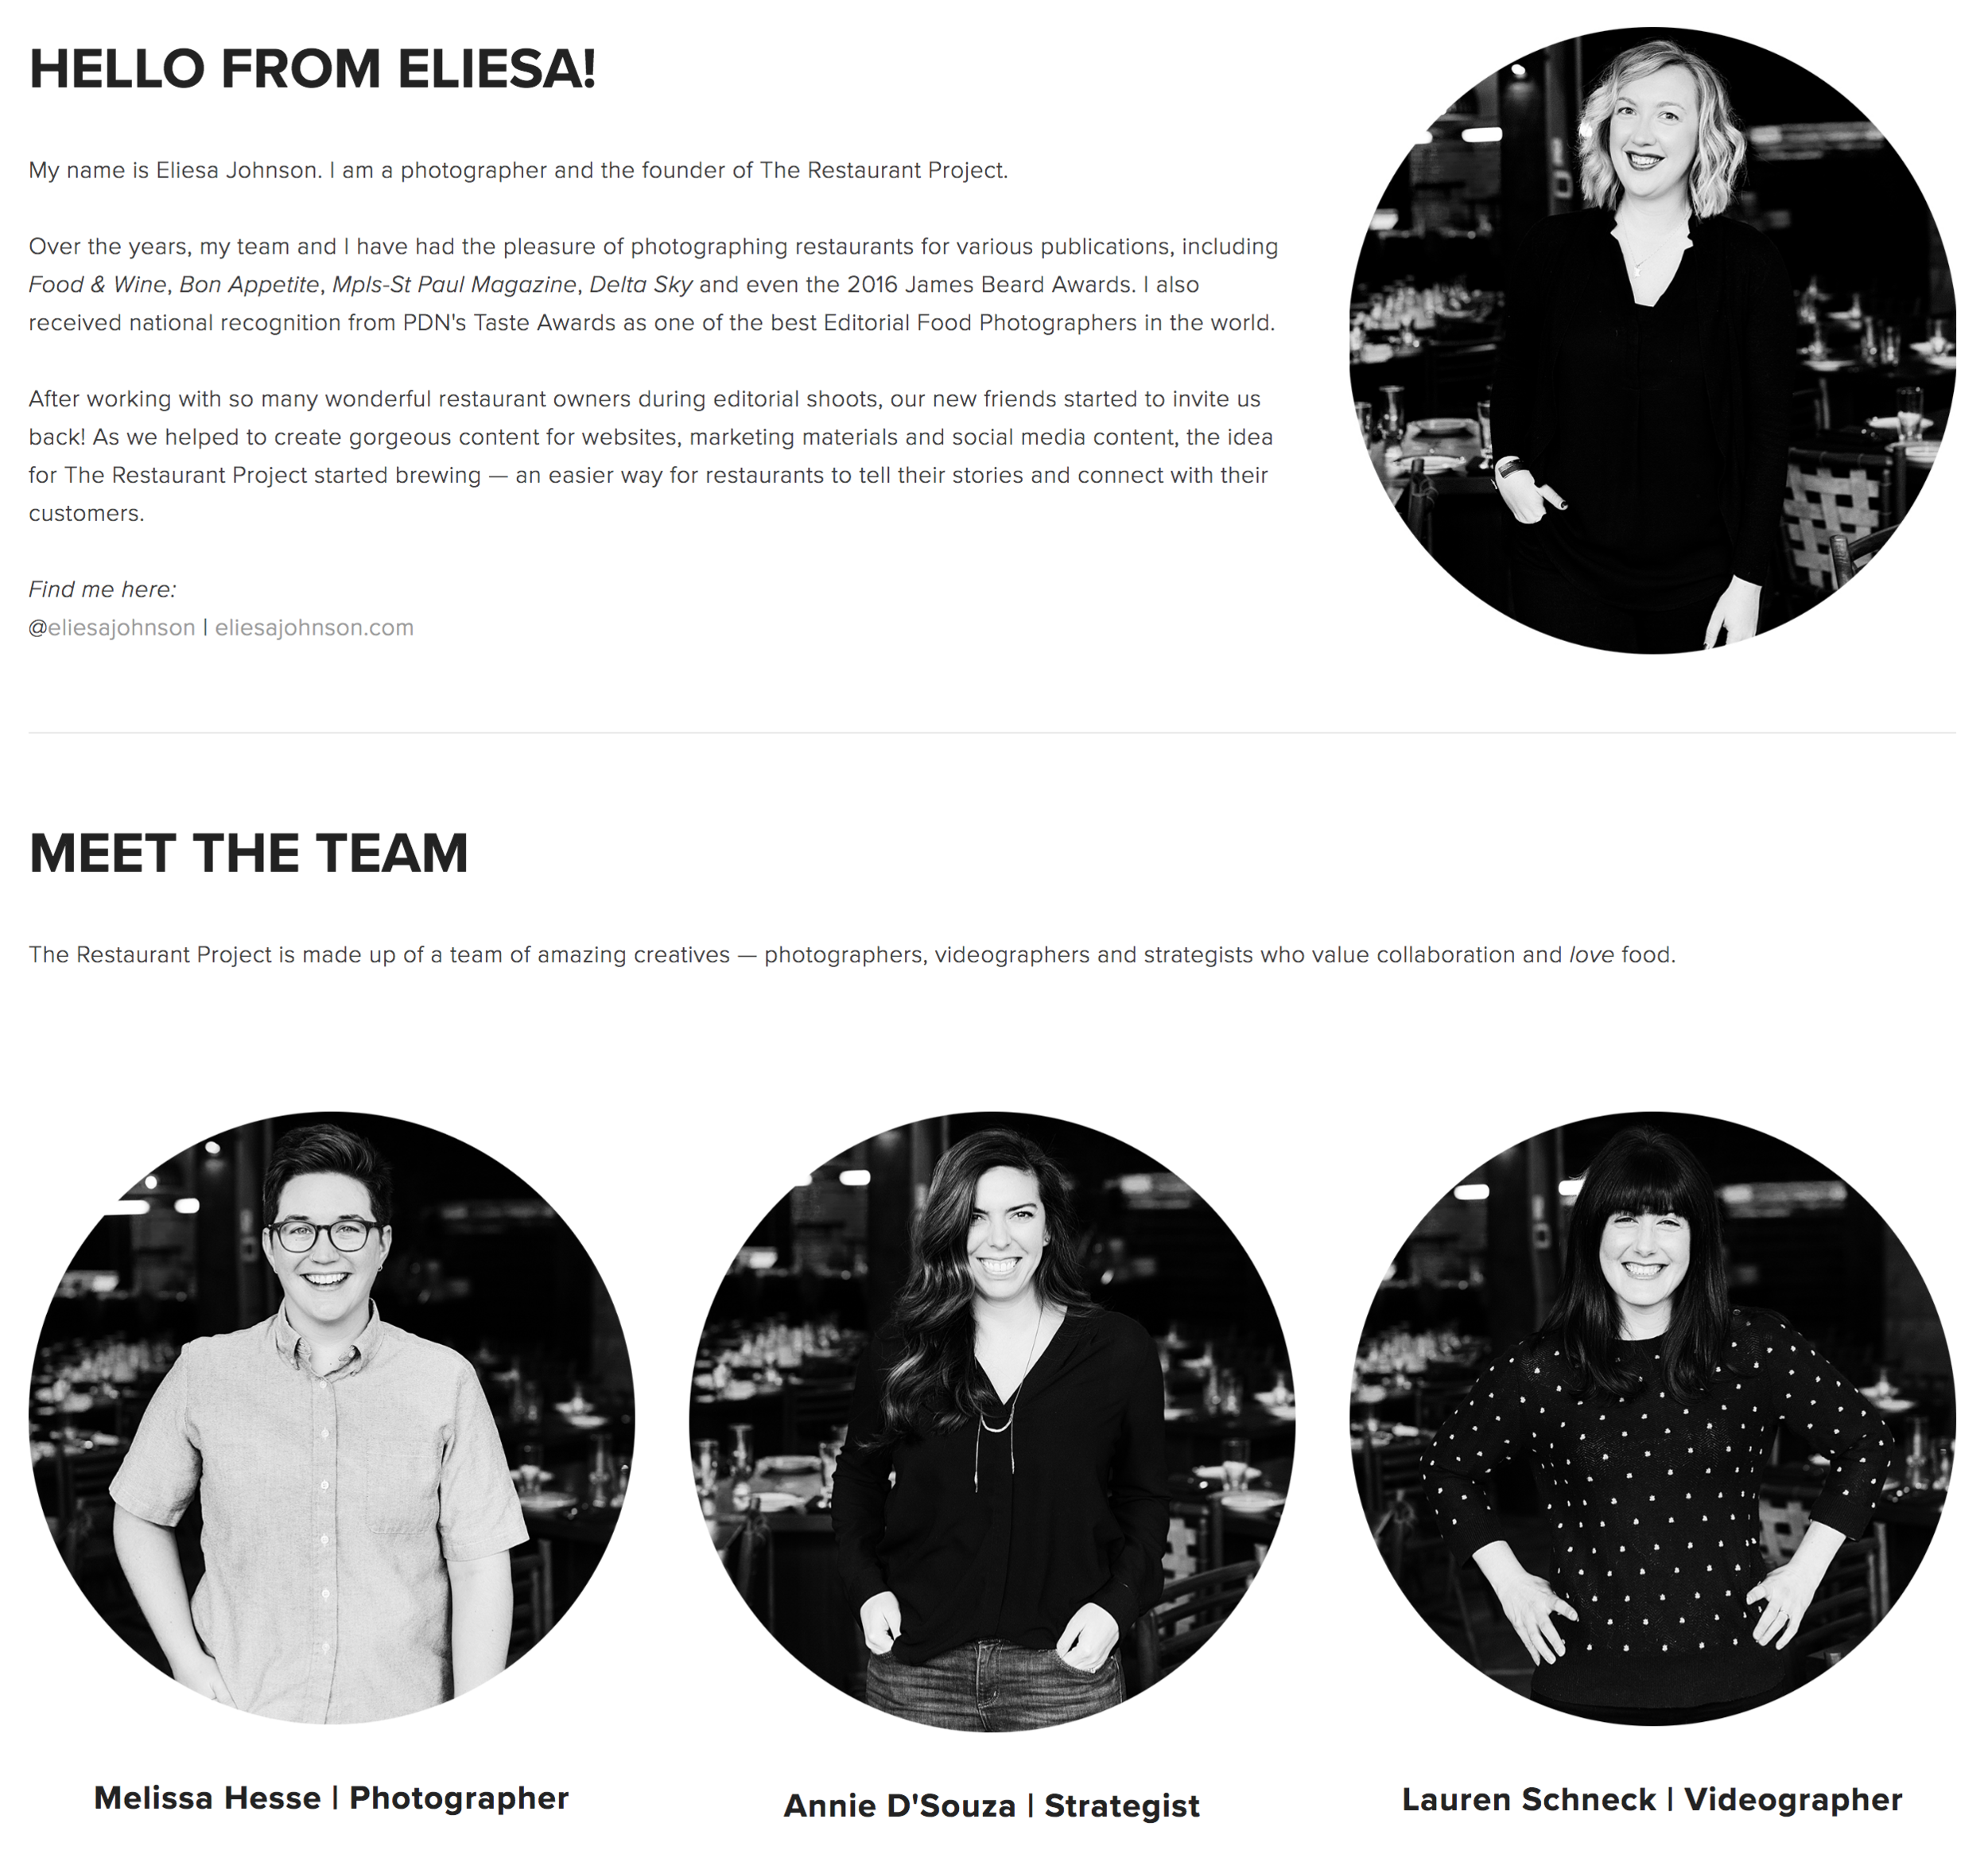 Meet our Team!